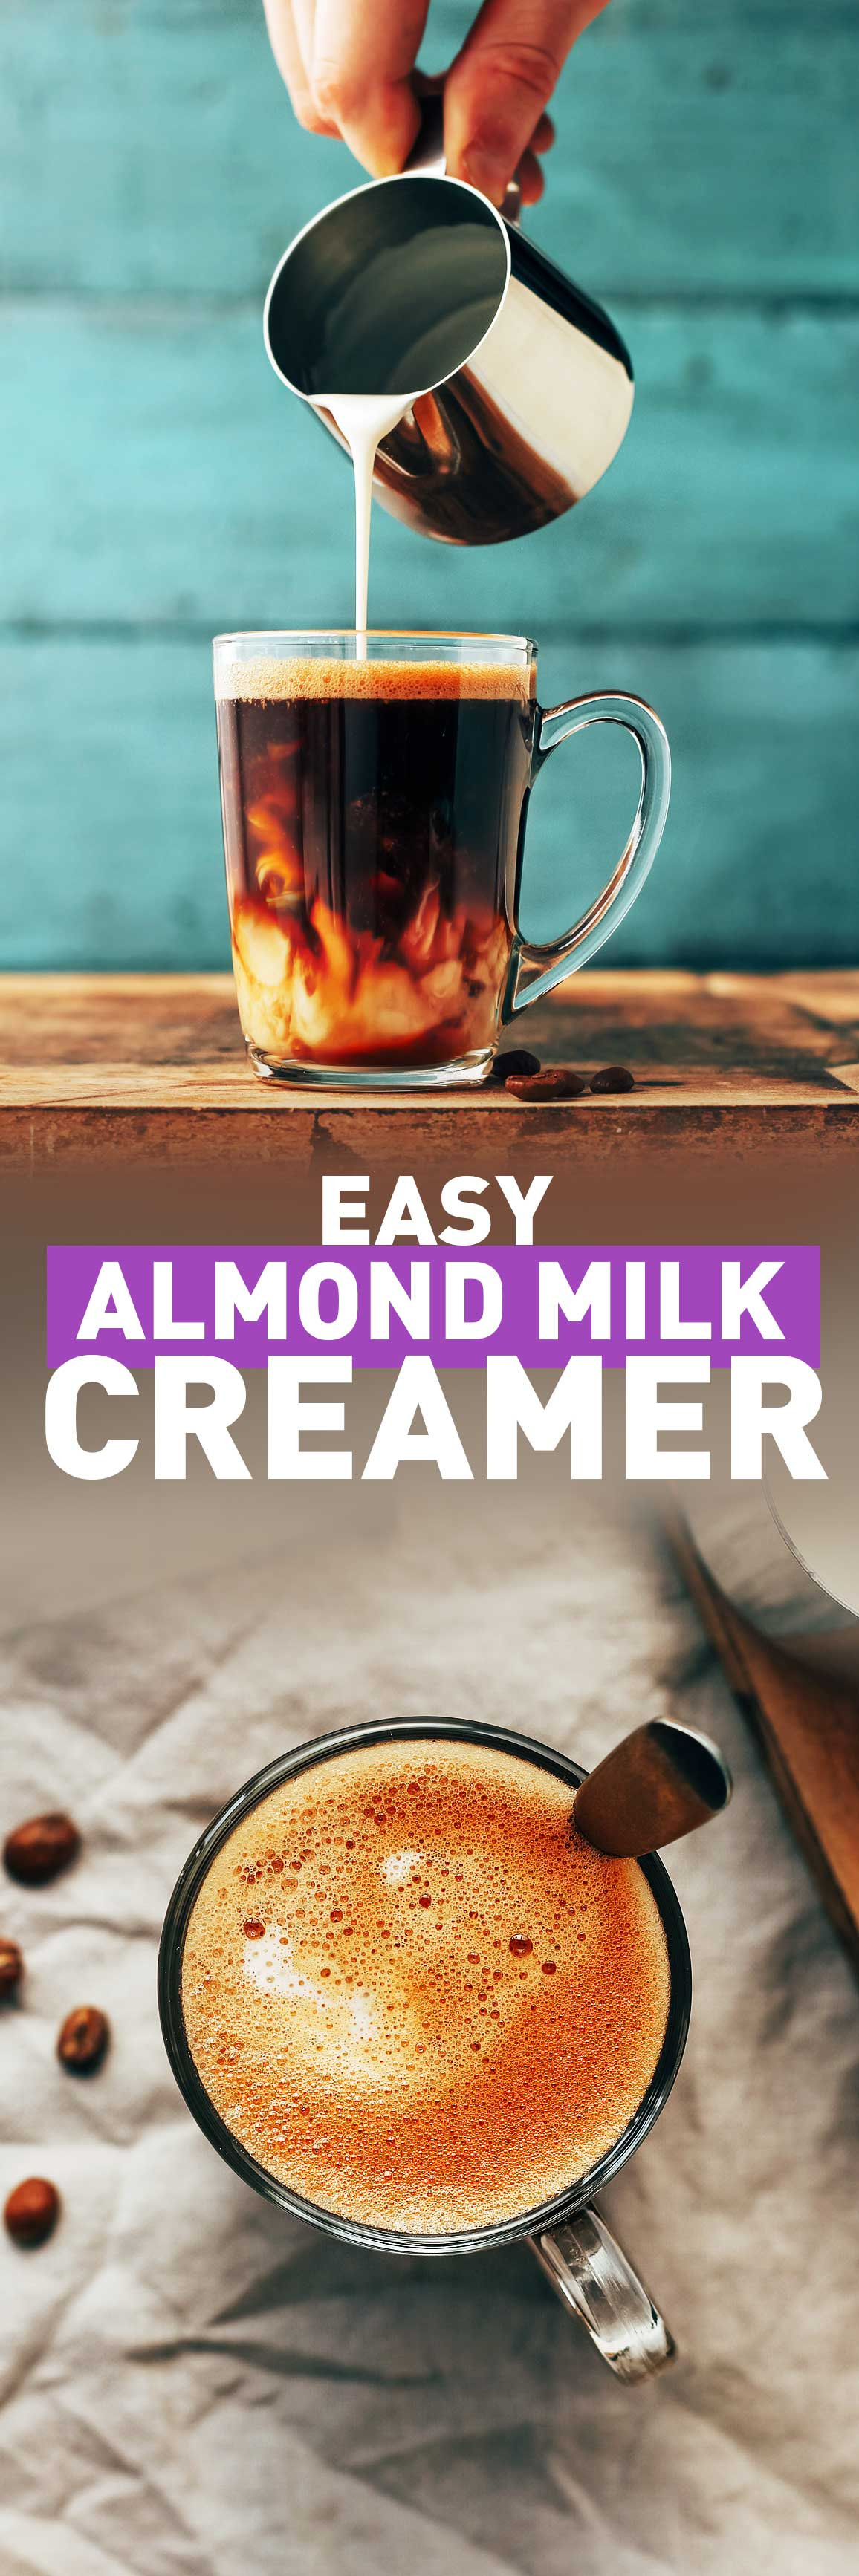 Easy Almond Milk Creamer